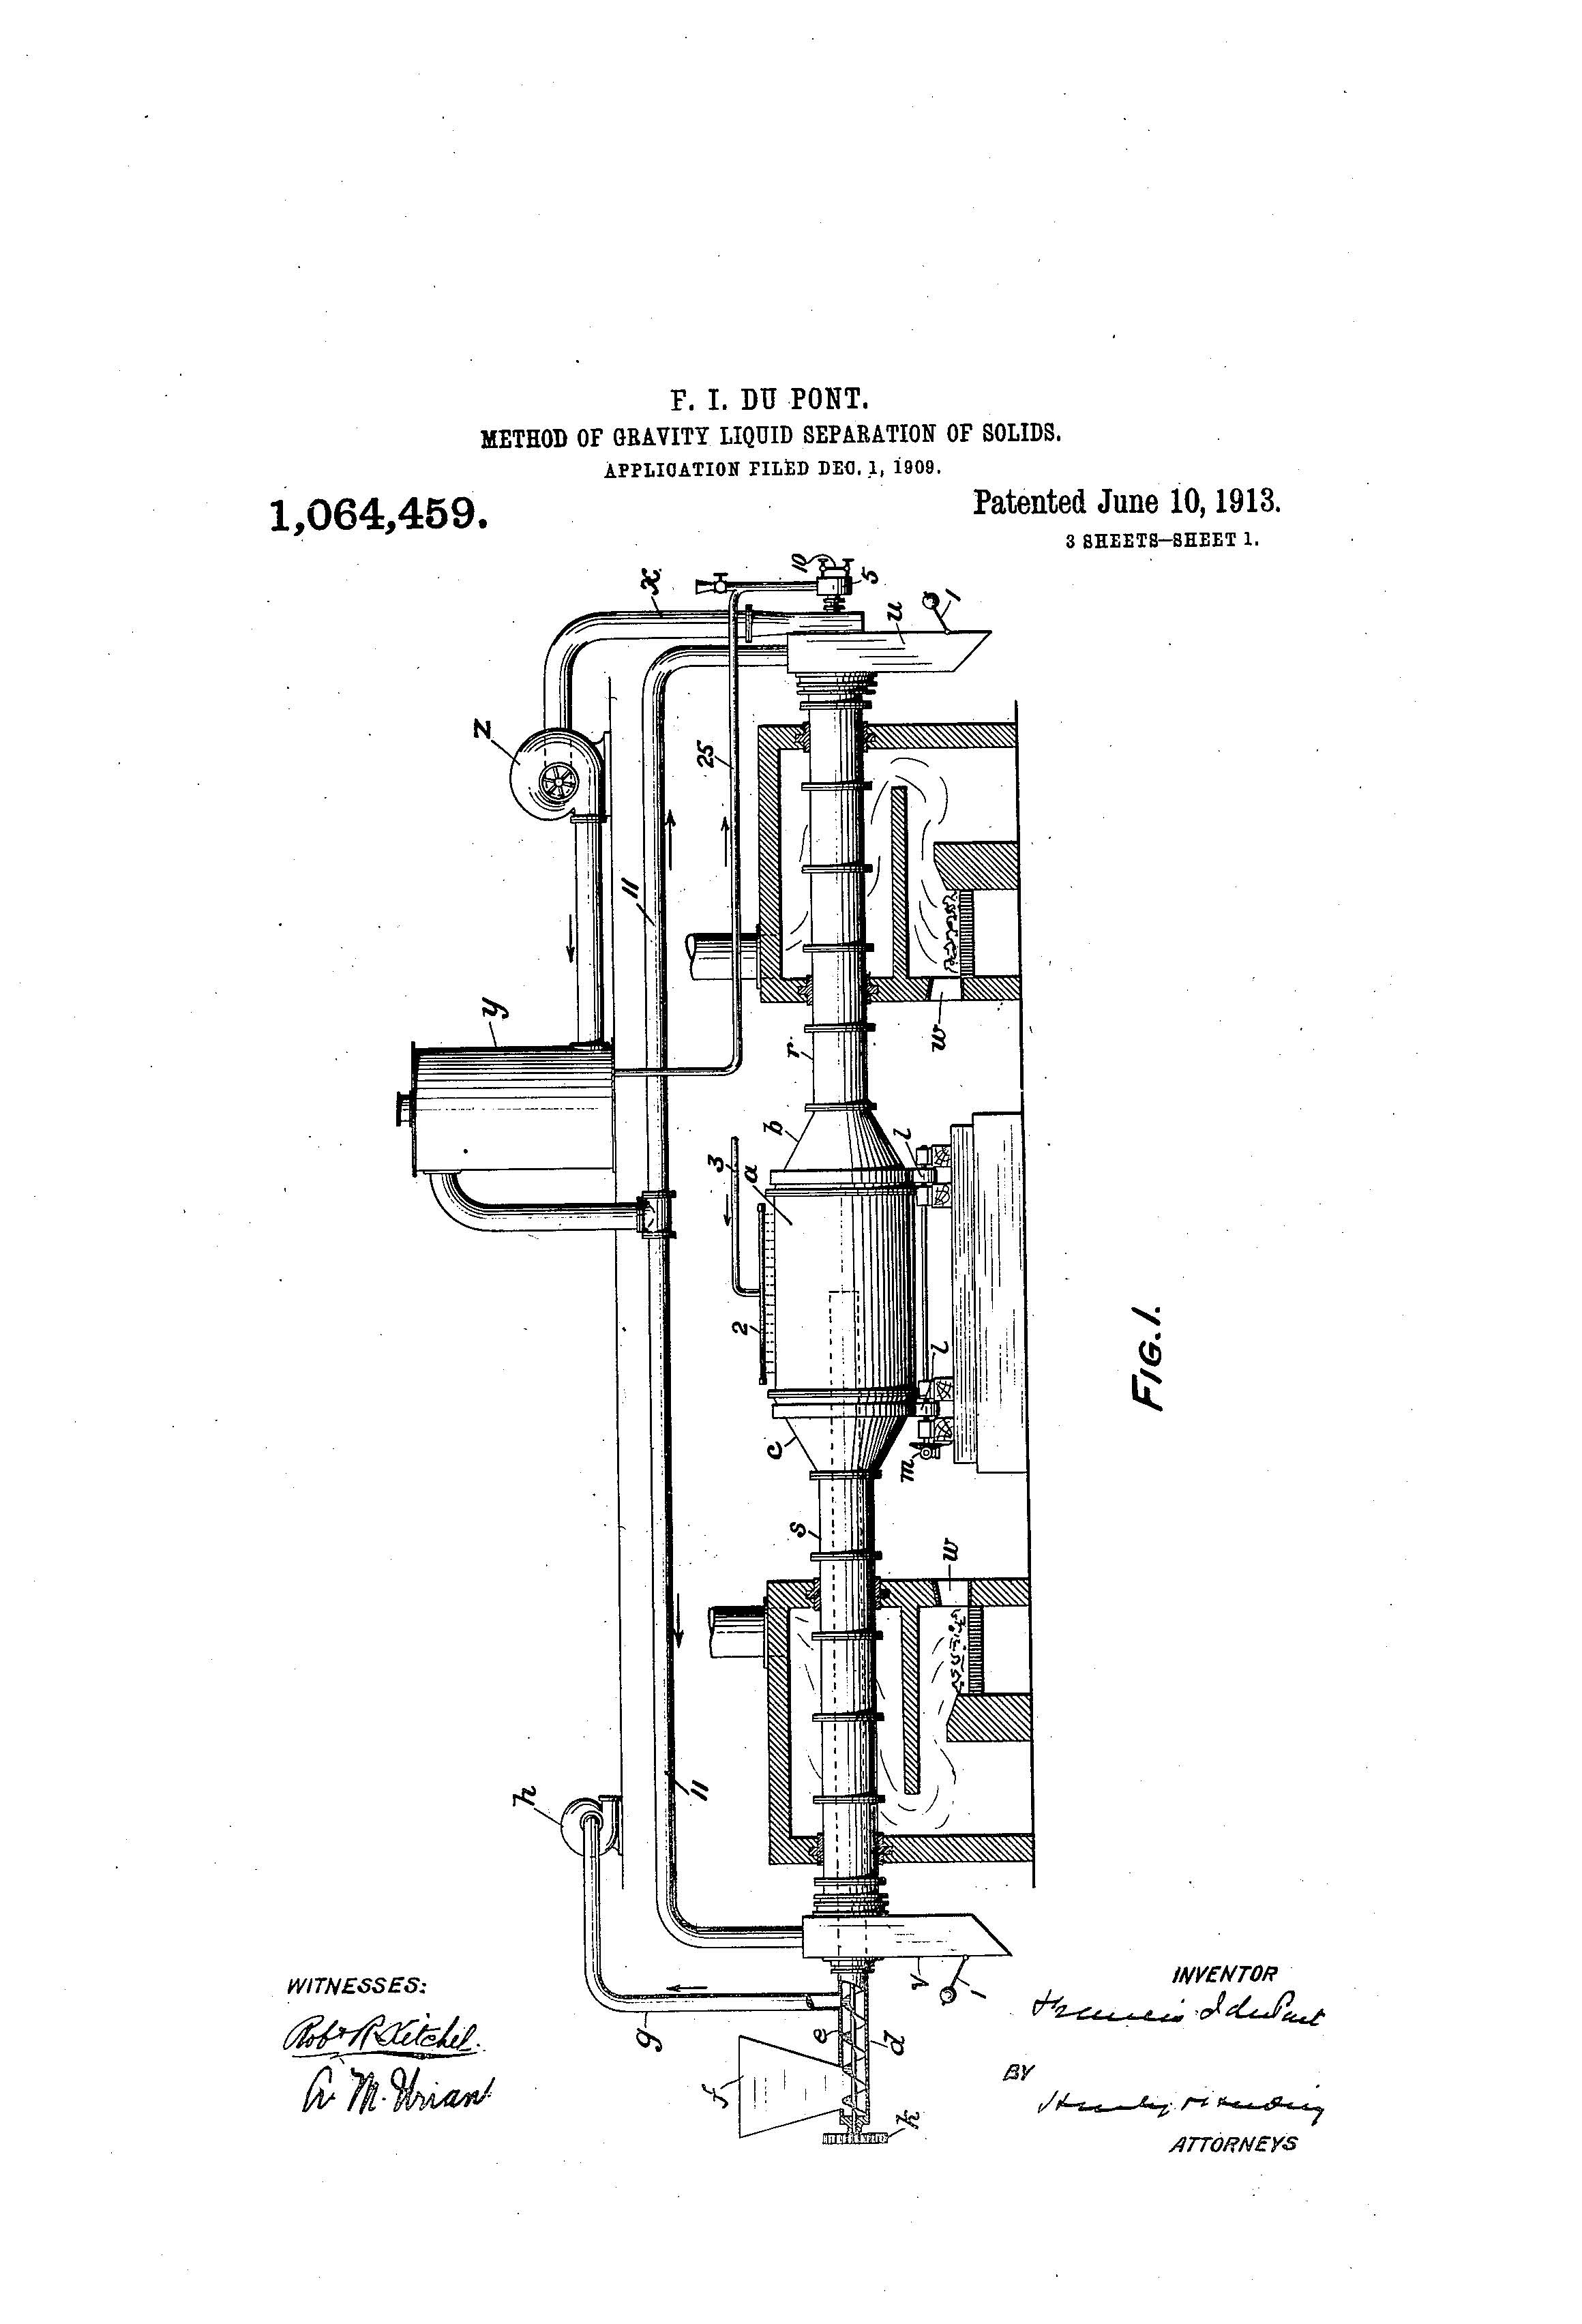 Patent of the Day: Method of Gravity Liquid Separation of